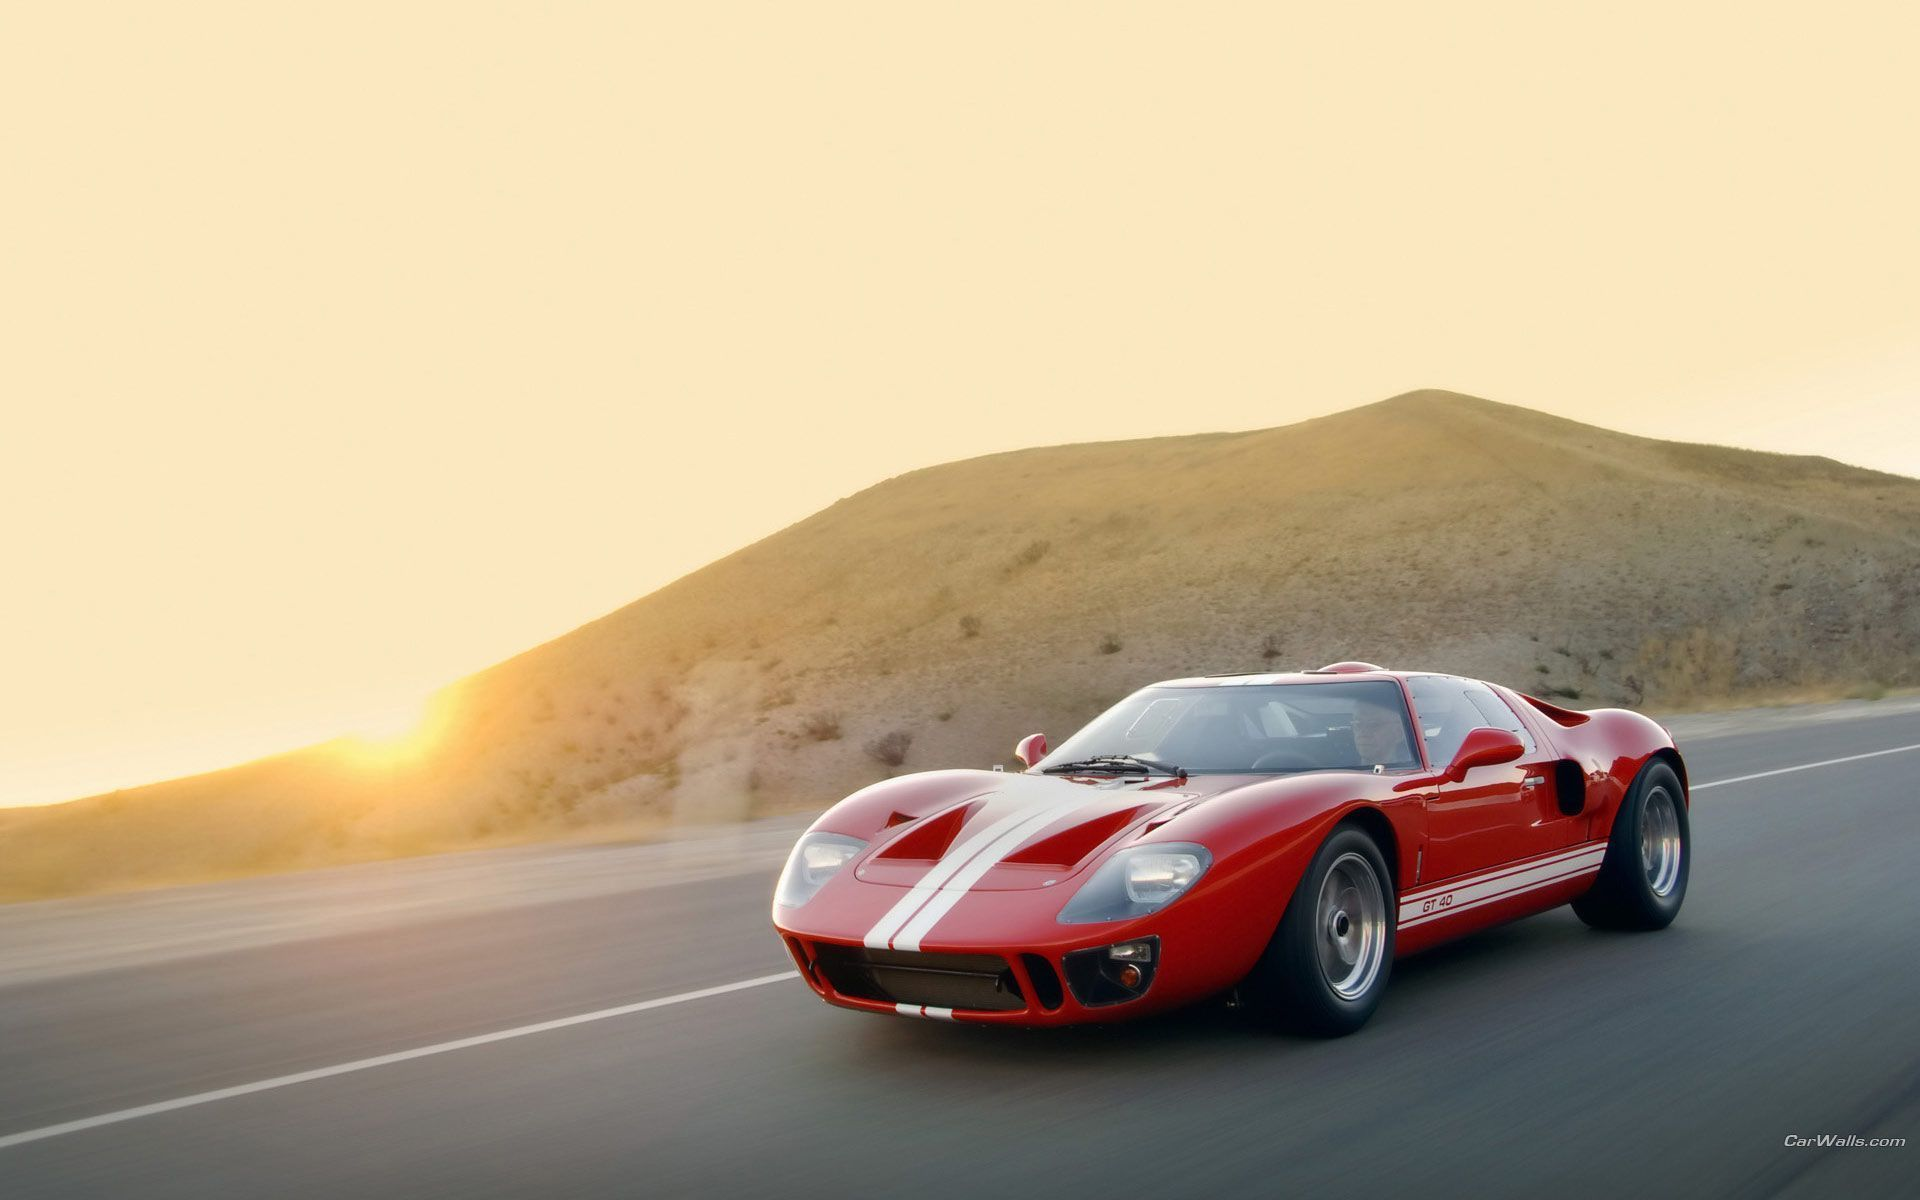 Ford Gt40 Wallpaper 4115 Hd Wallpapers In Cars Imagesci